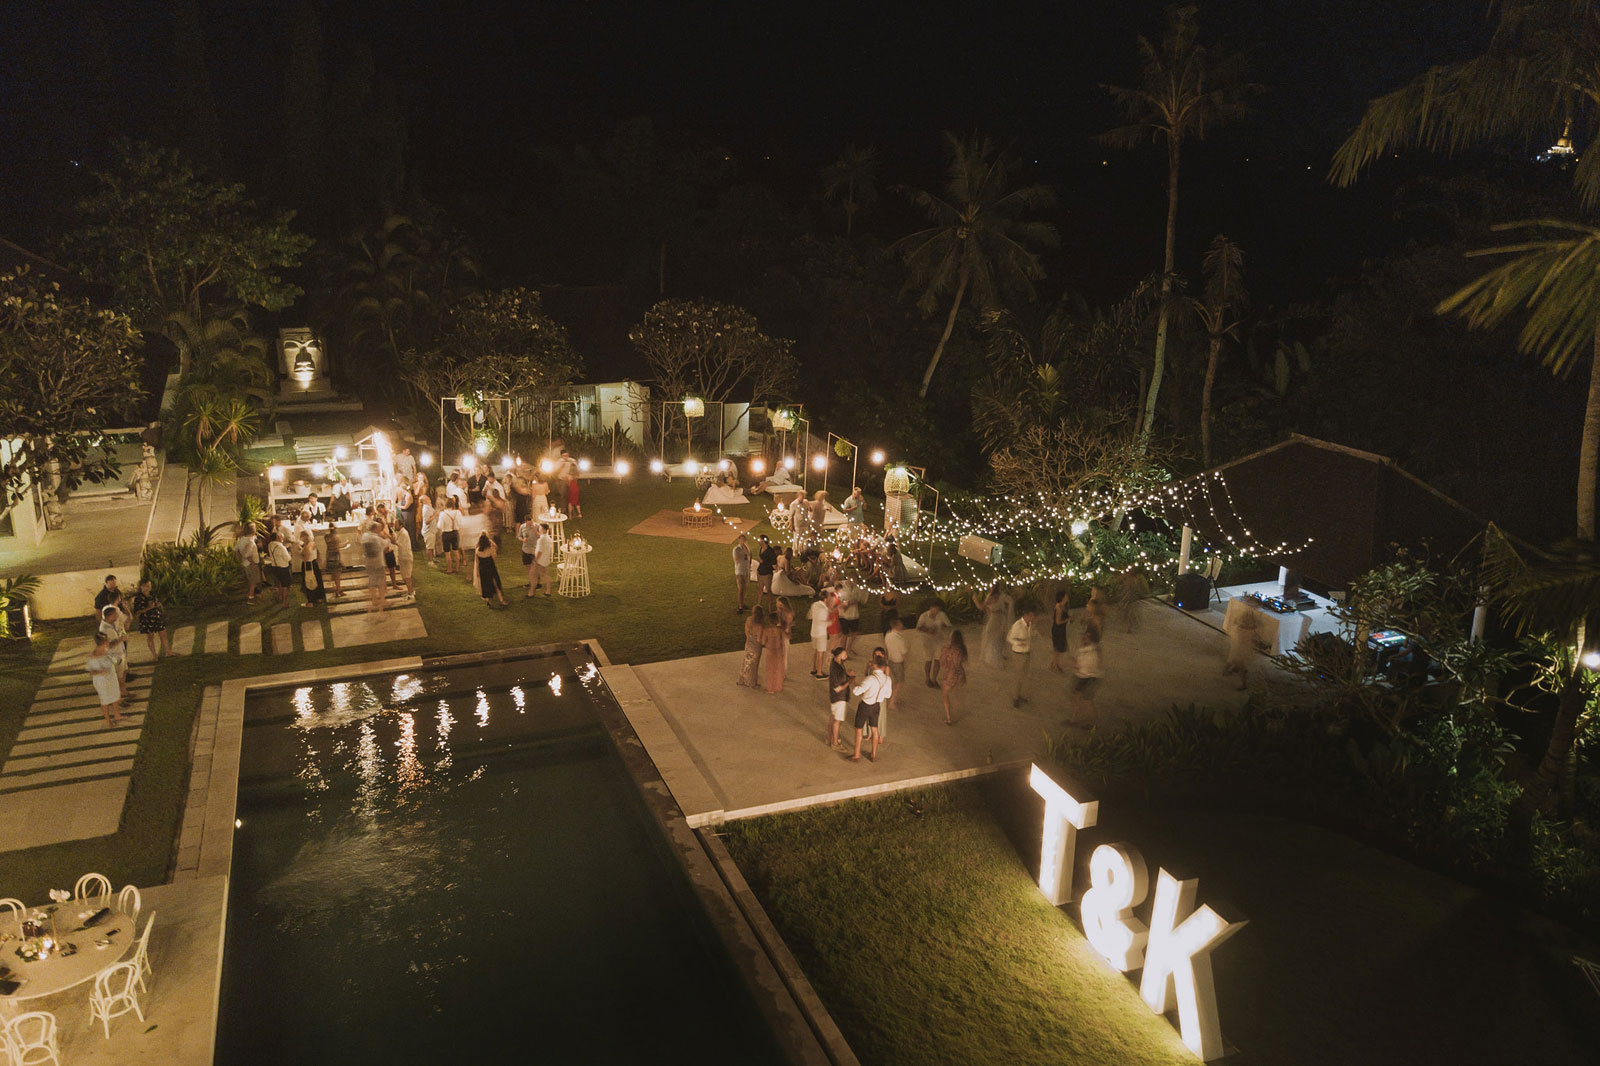 newfound-t-k-canggu-bali-ubud-wedding-photographer-980